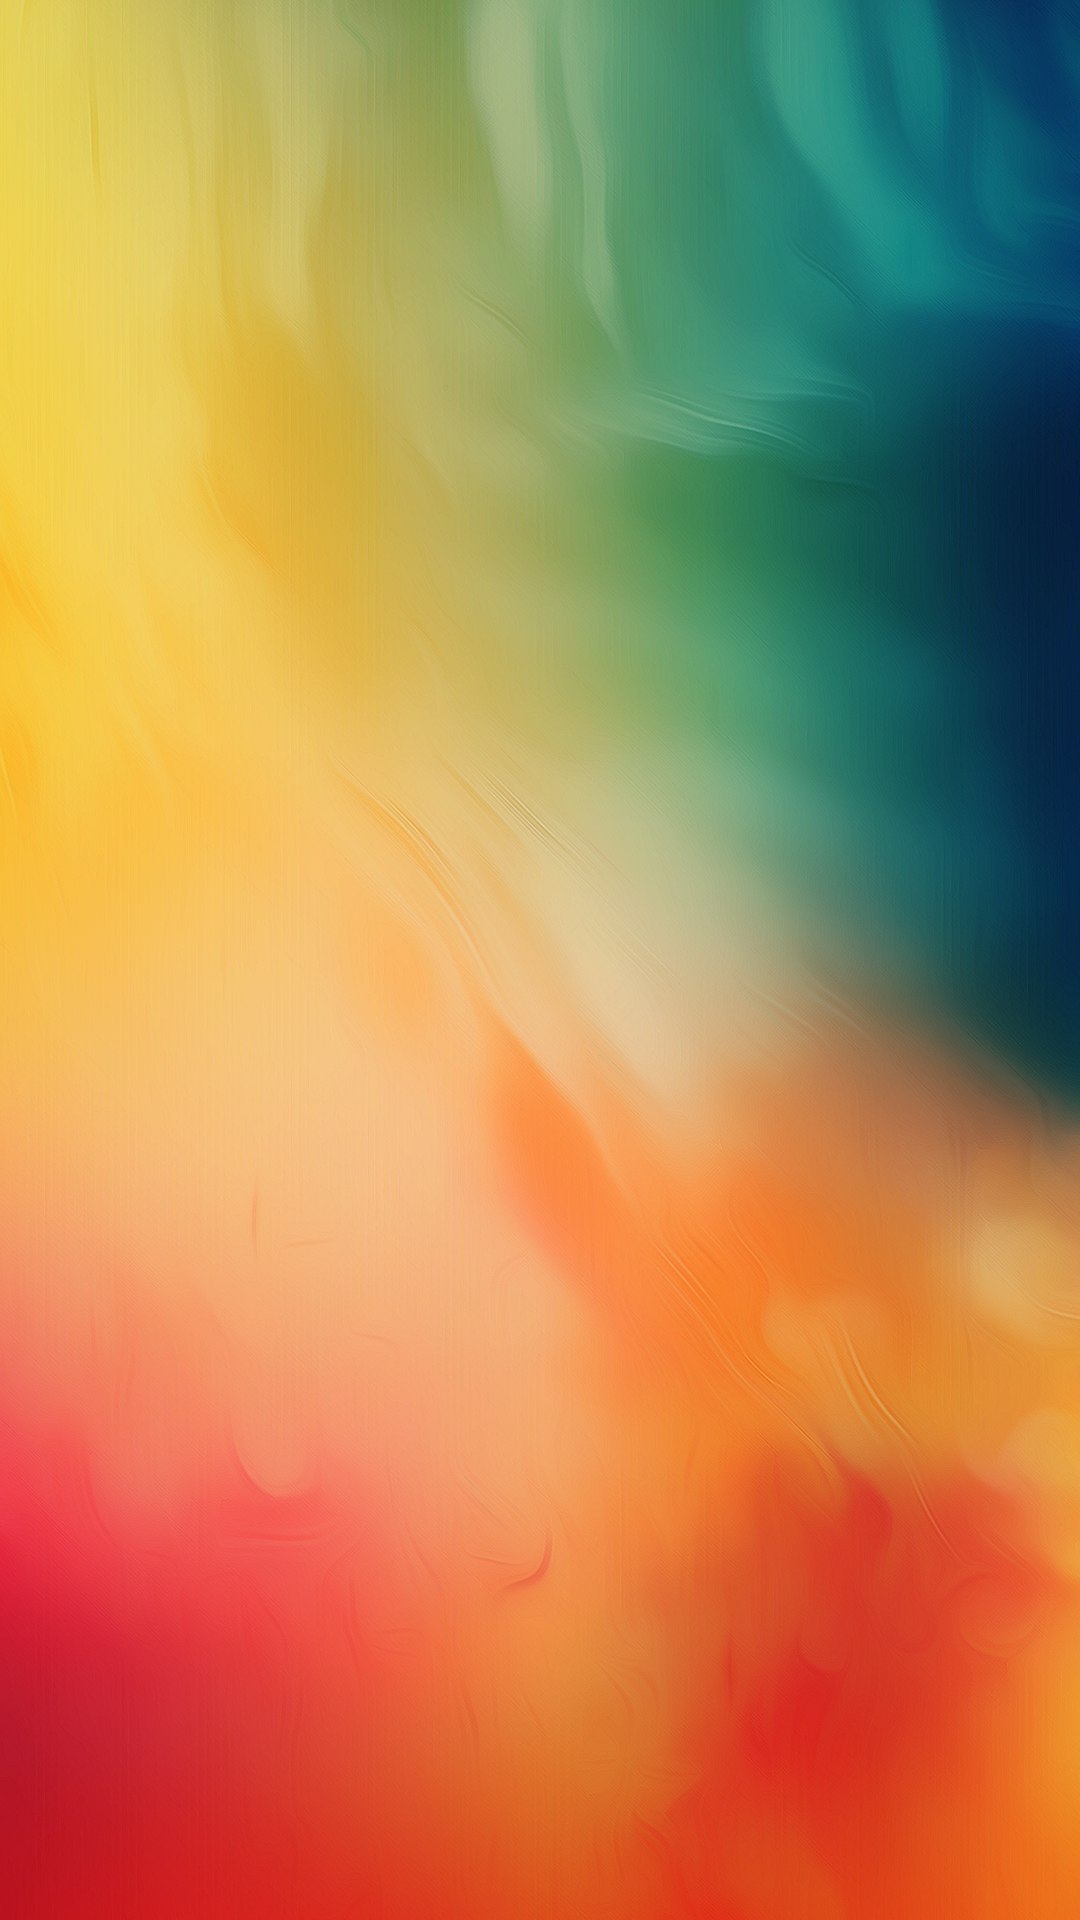 Abstract wallpapers vivid contrasting colors [pack 3] 1080x1920